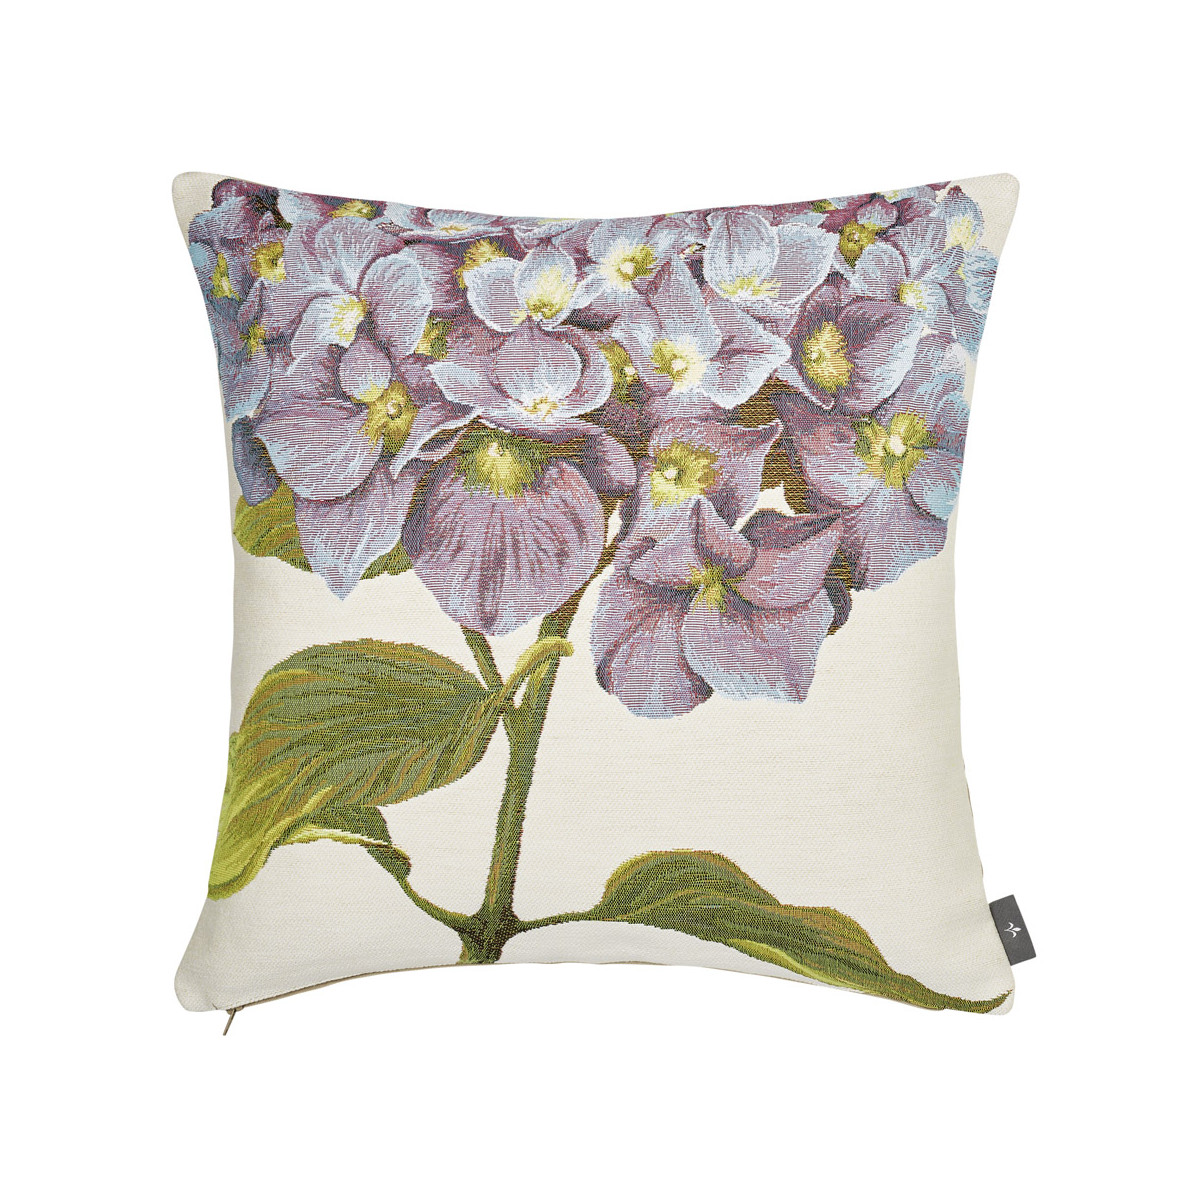 Coussin tapisserie hortensias made in france blanc   50x50